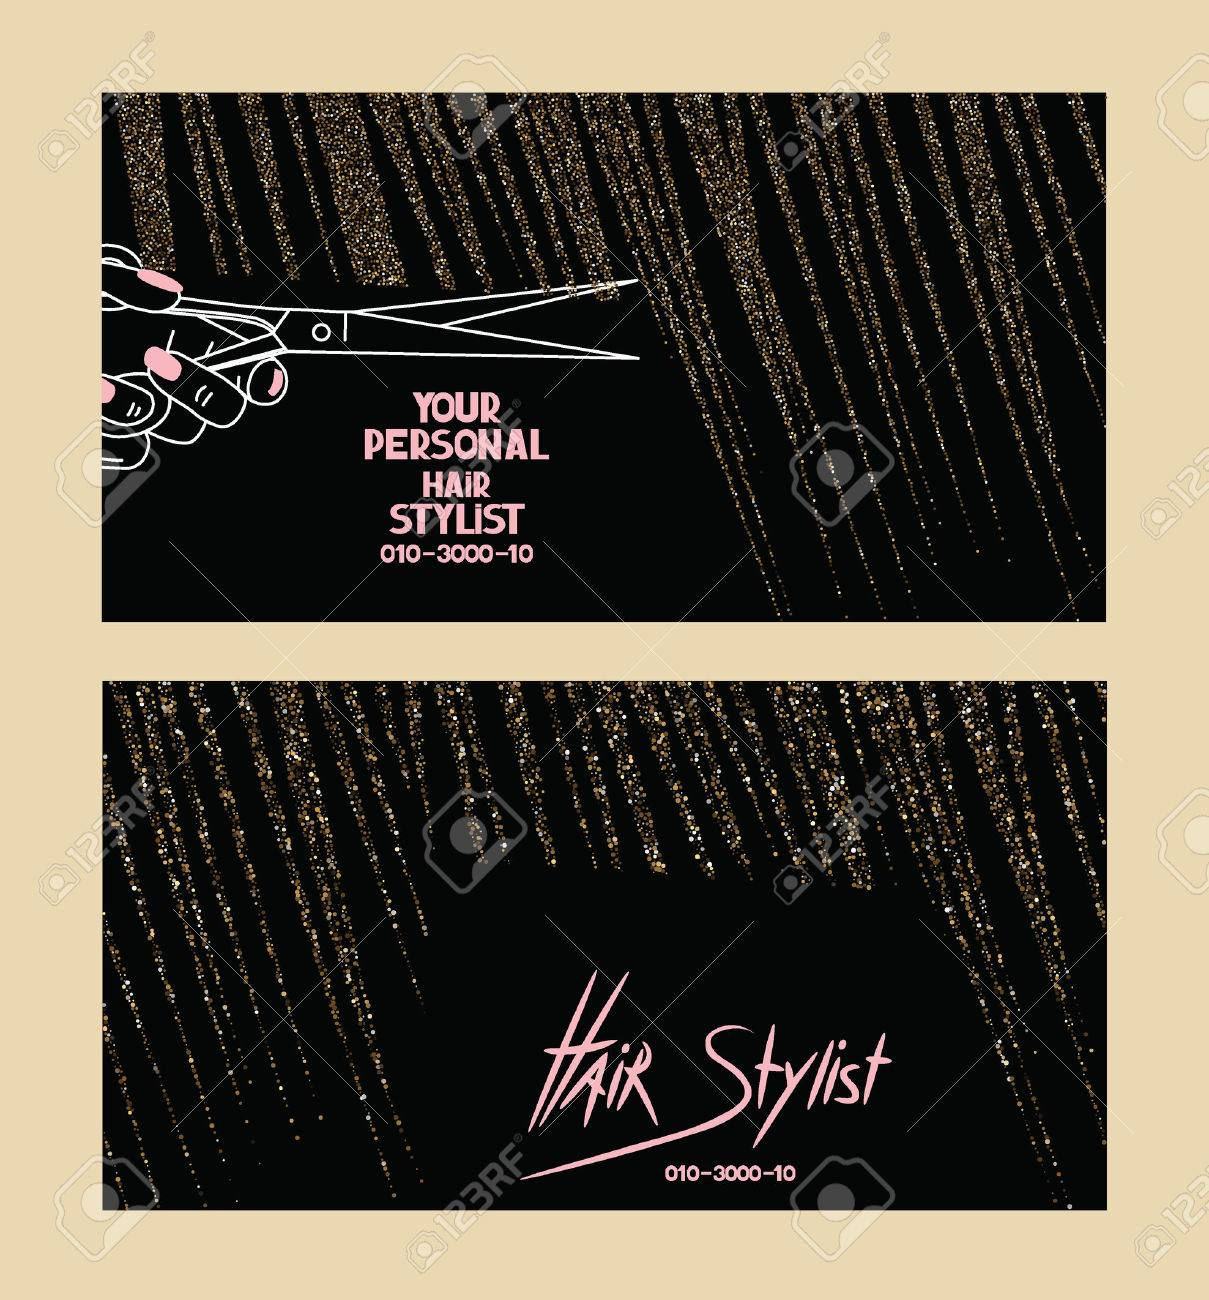 Hair Stylist Business Cards With Gold Textured Abstract Hair Royalty ...